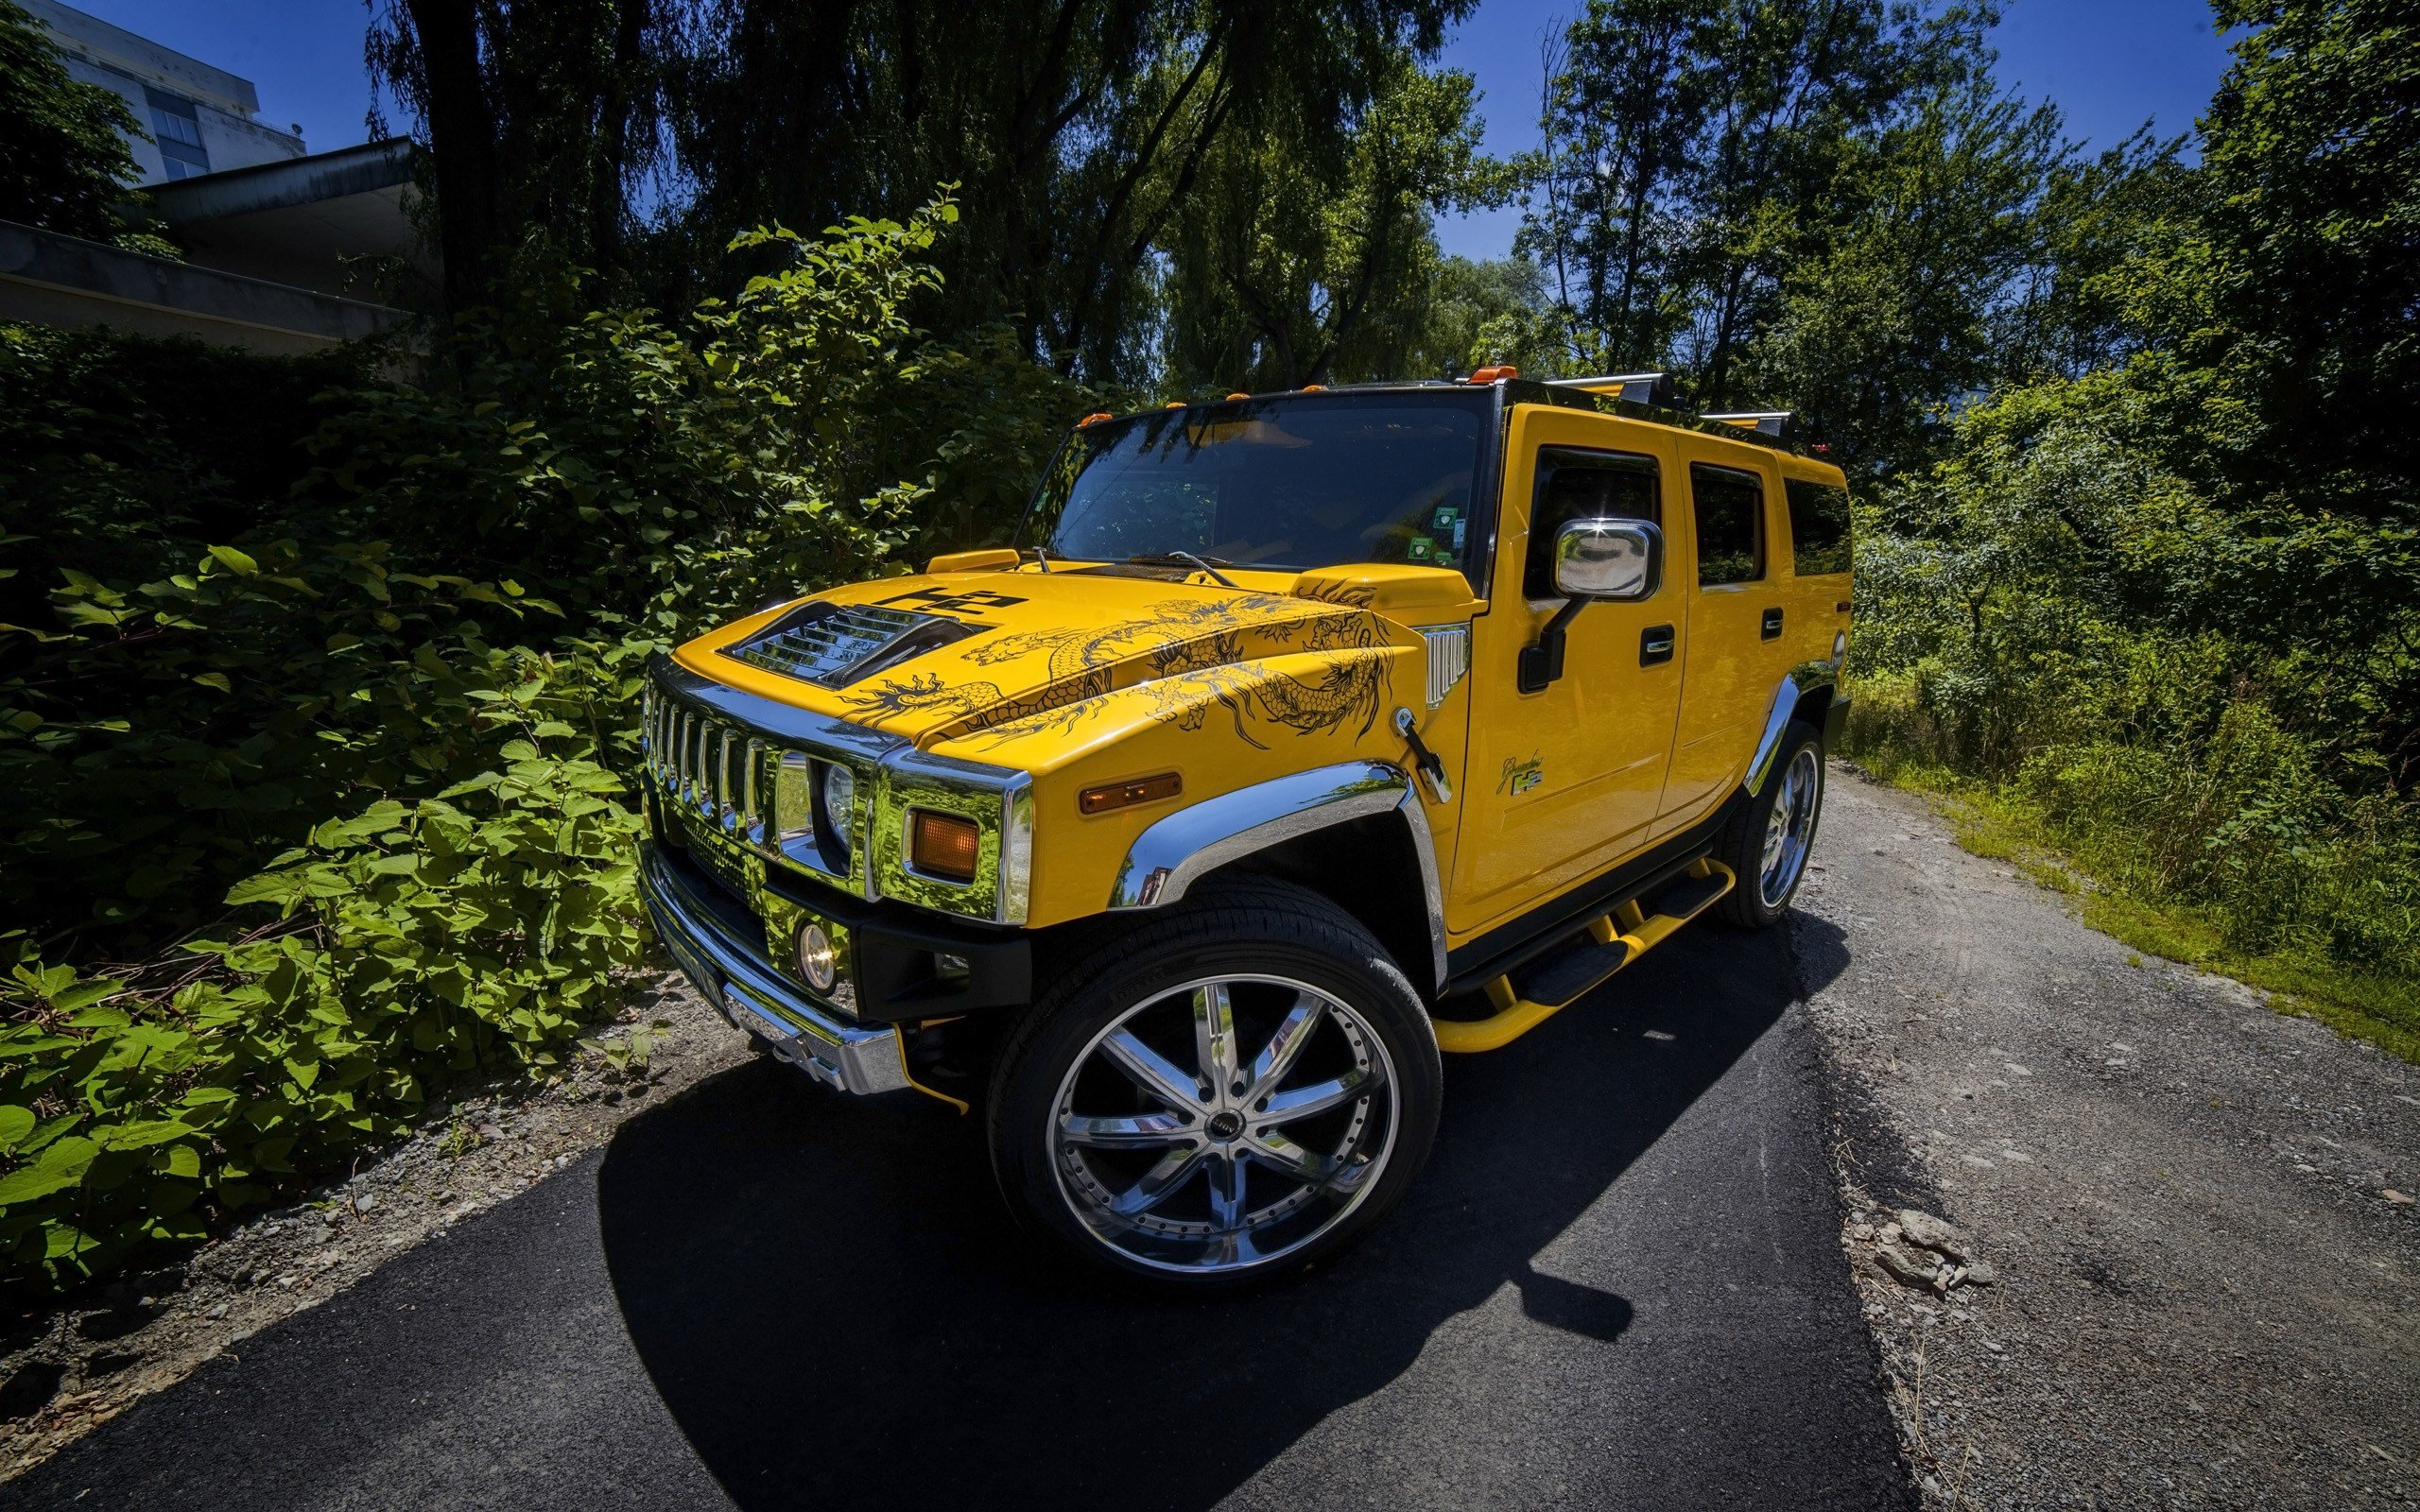 Latest 2014 Vilner Hummer H2 Wallpaper Hd Car Wallpapers Id 4656 Free Download